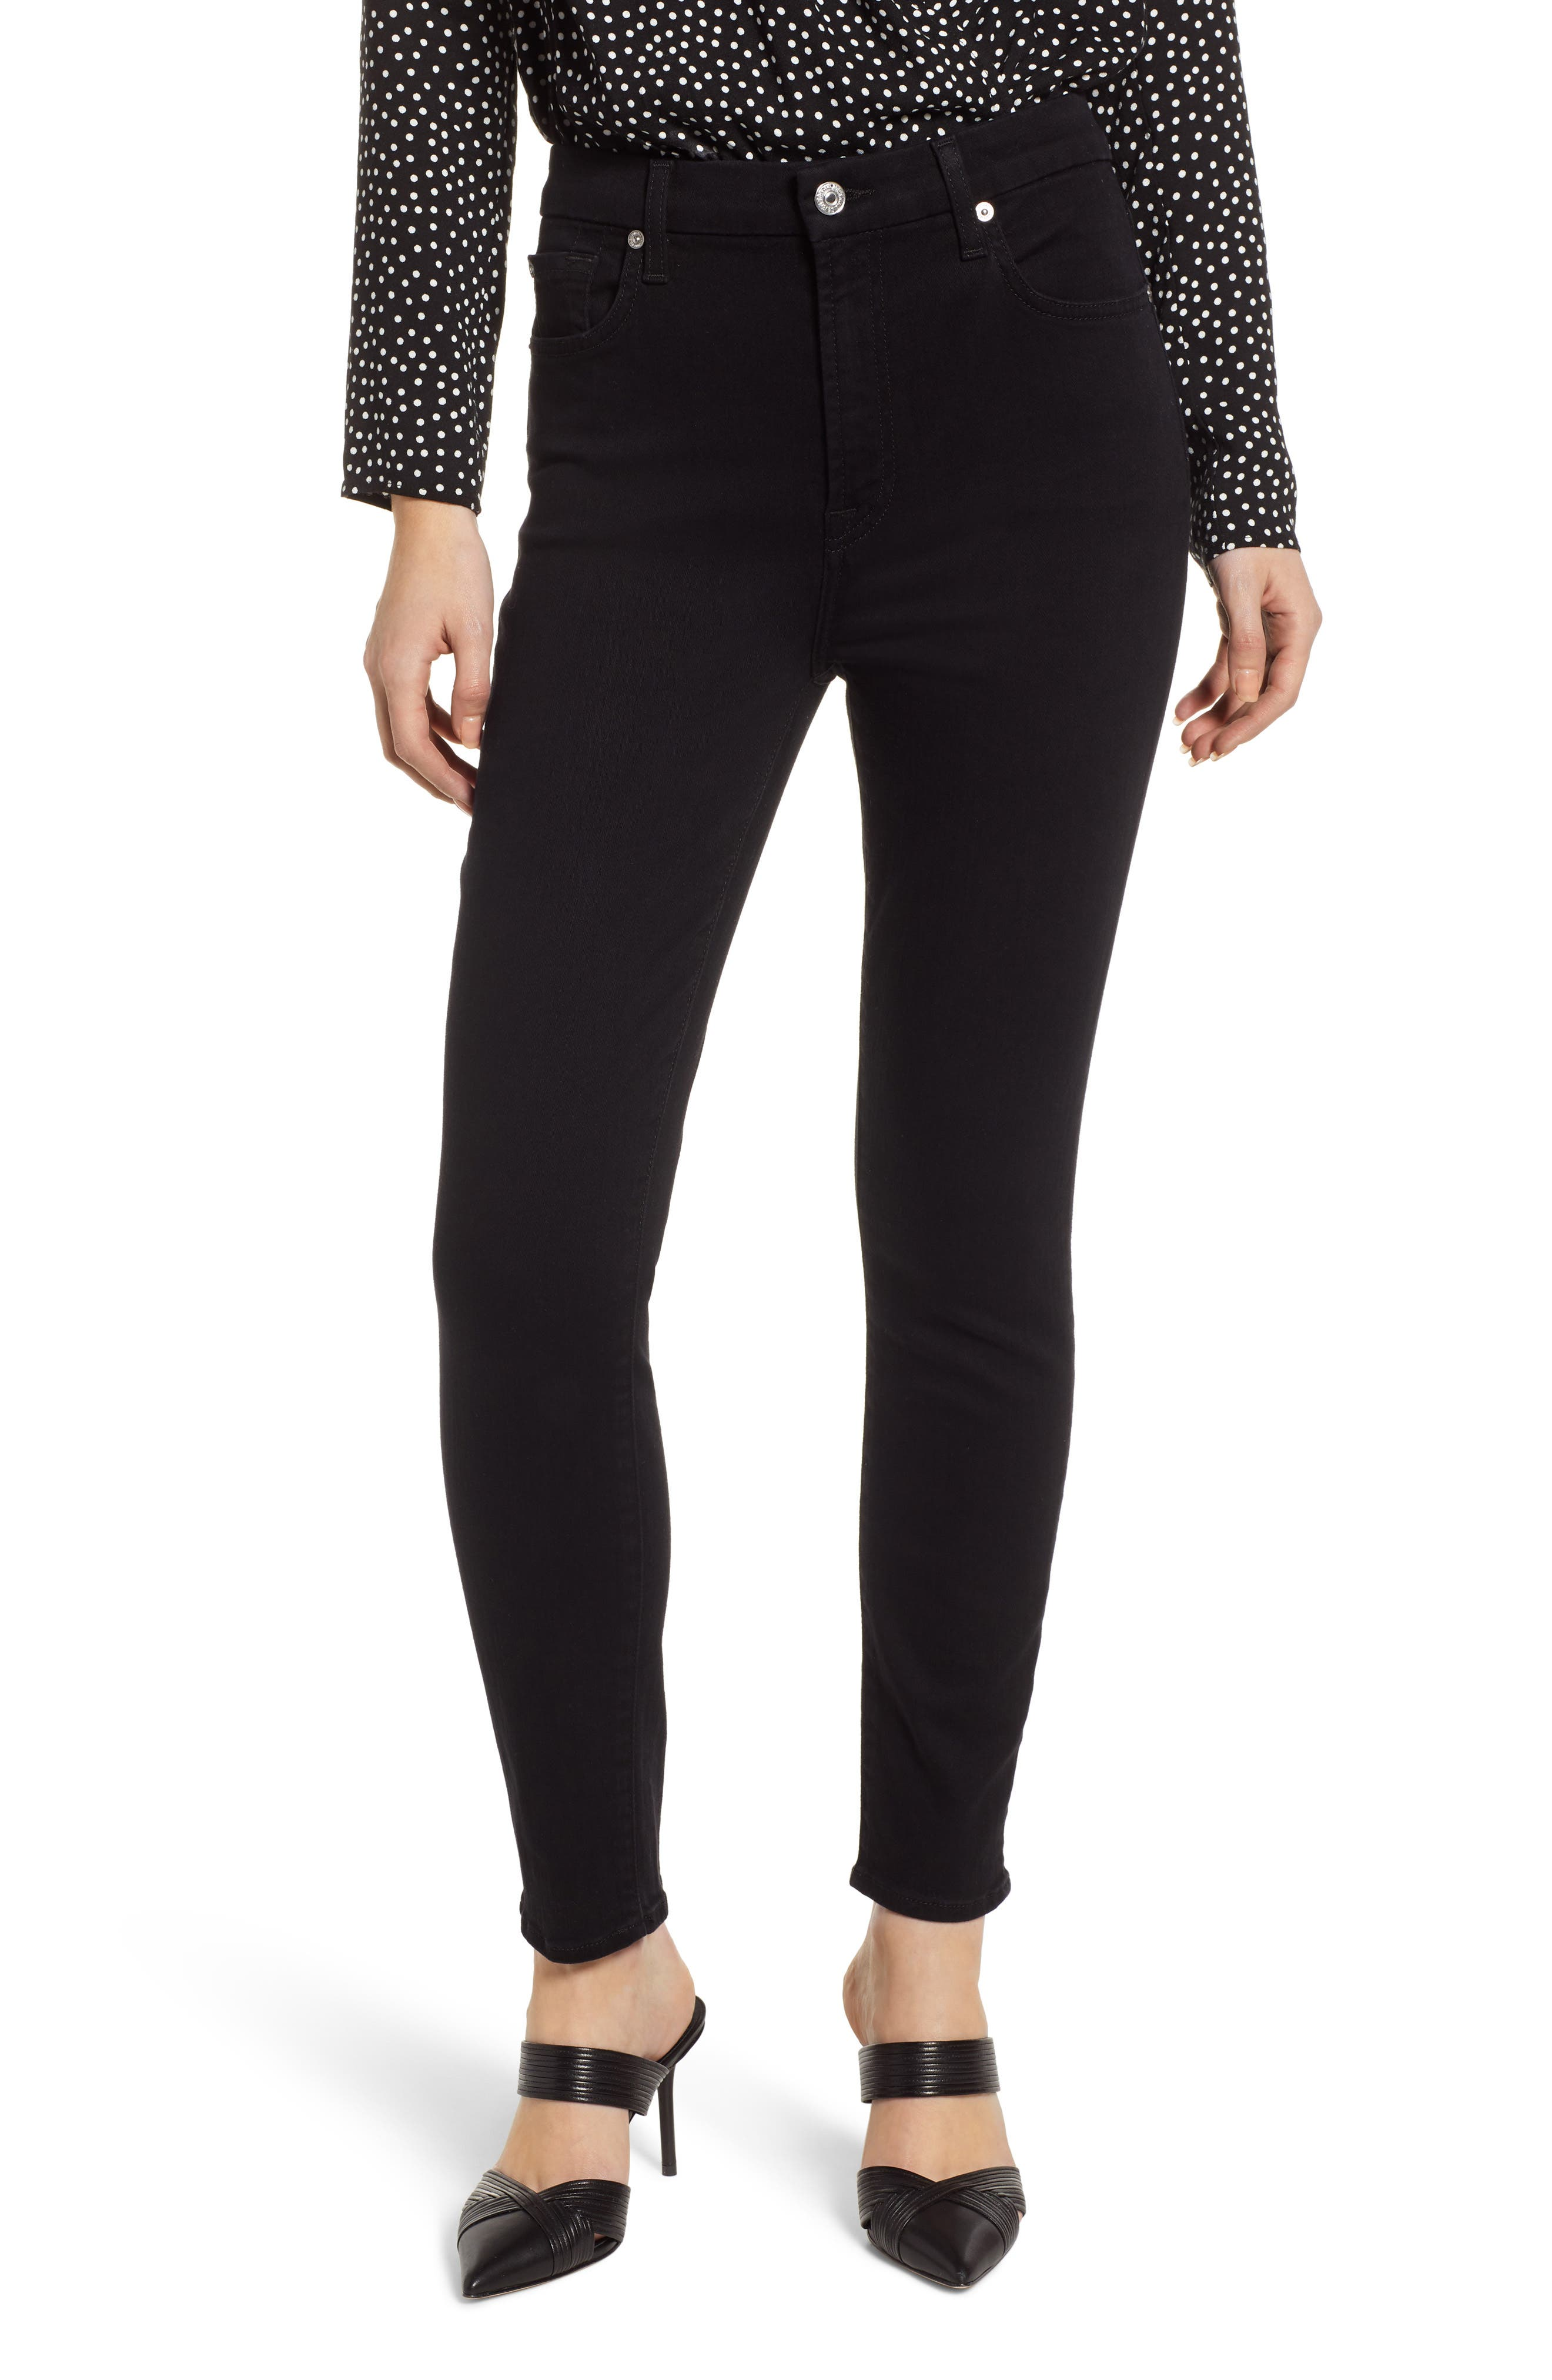 7 FOR ALL MANKIND<SUP>®</SUP>, Aubrey Super High Waist Ankle Skinny Jeans, Main thumbnail 1, color, PITCH BLACK